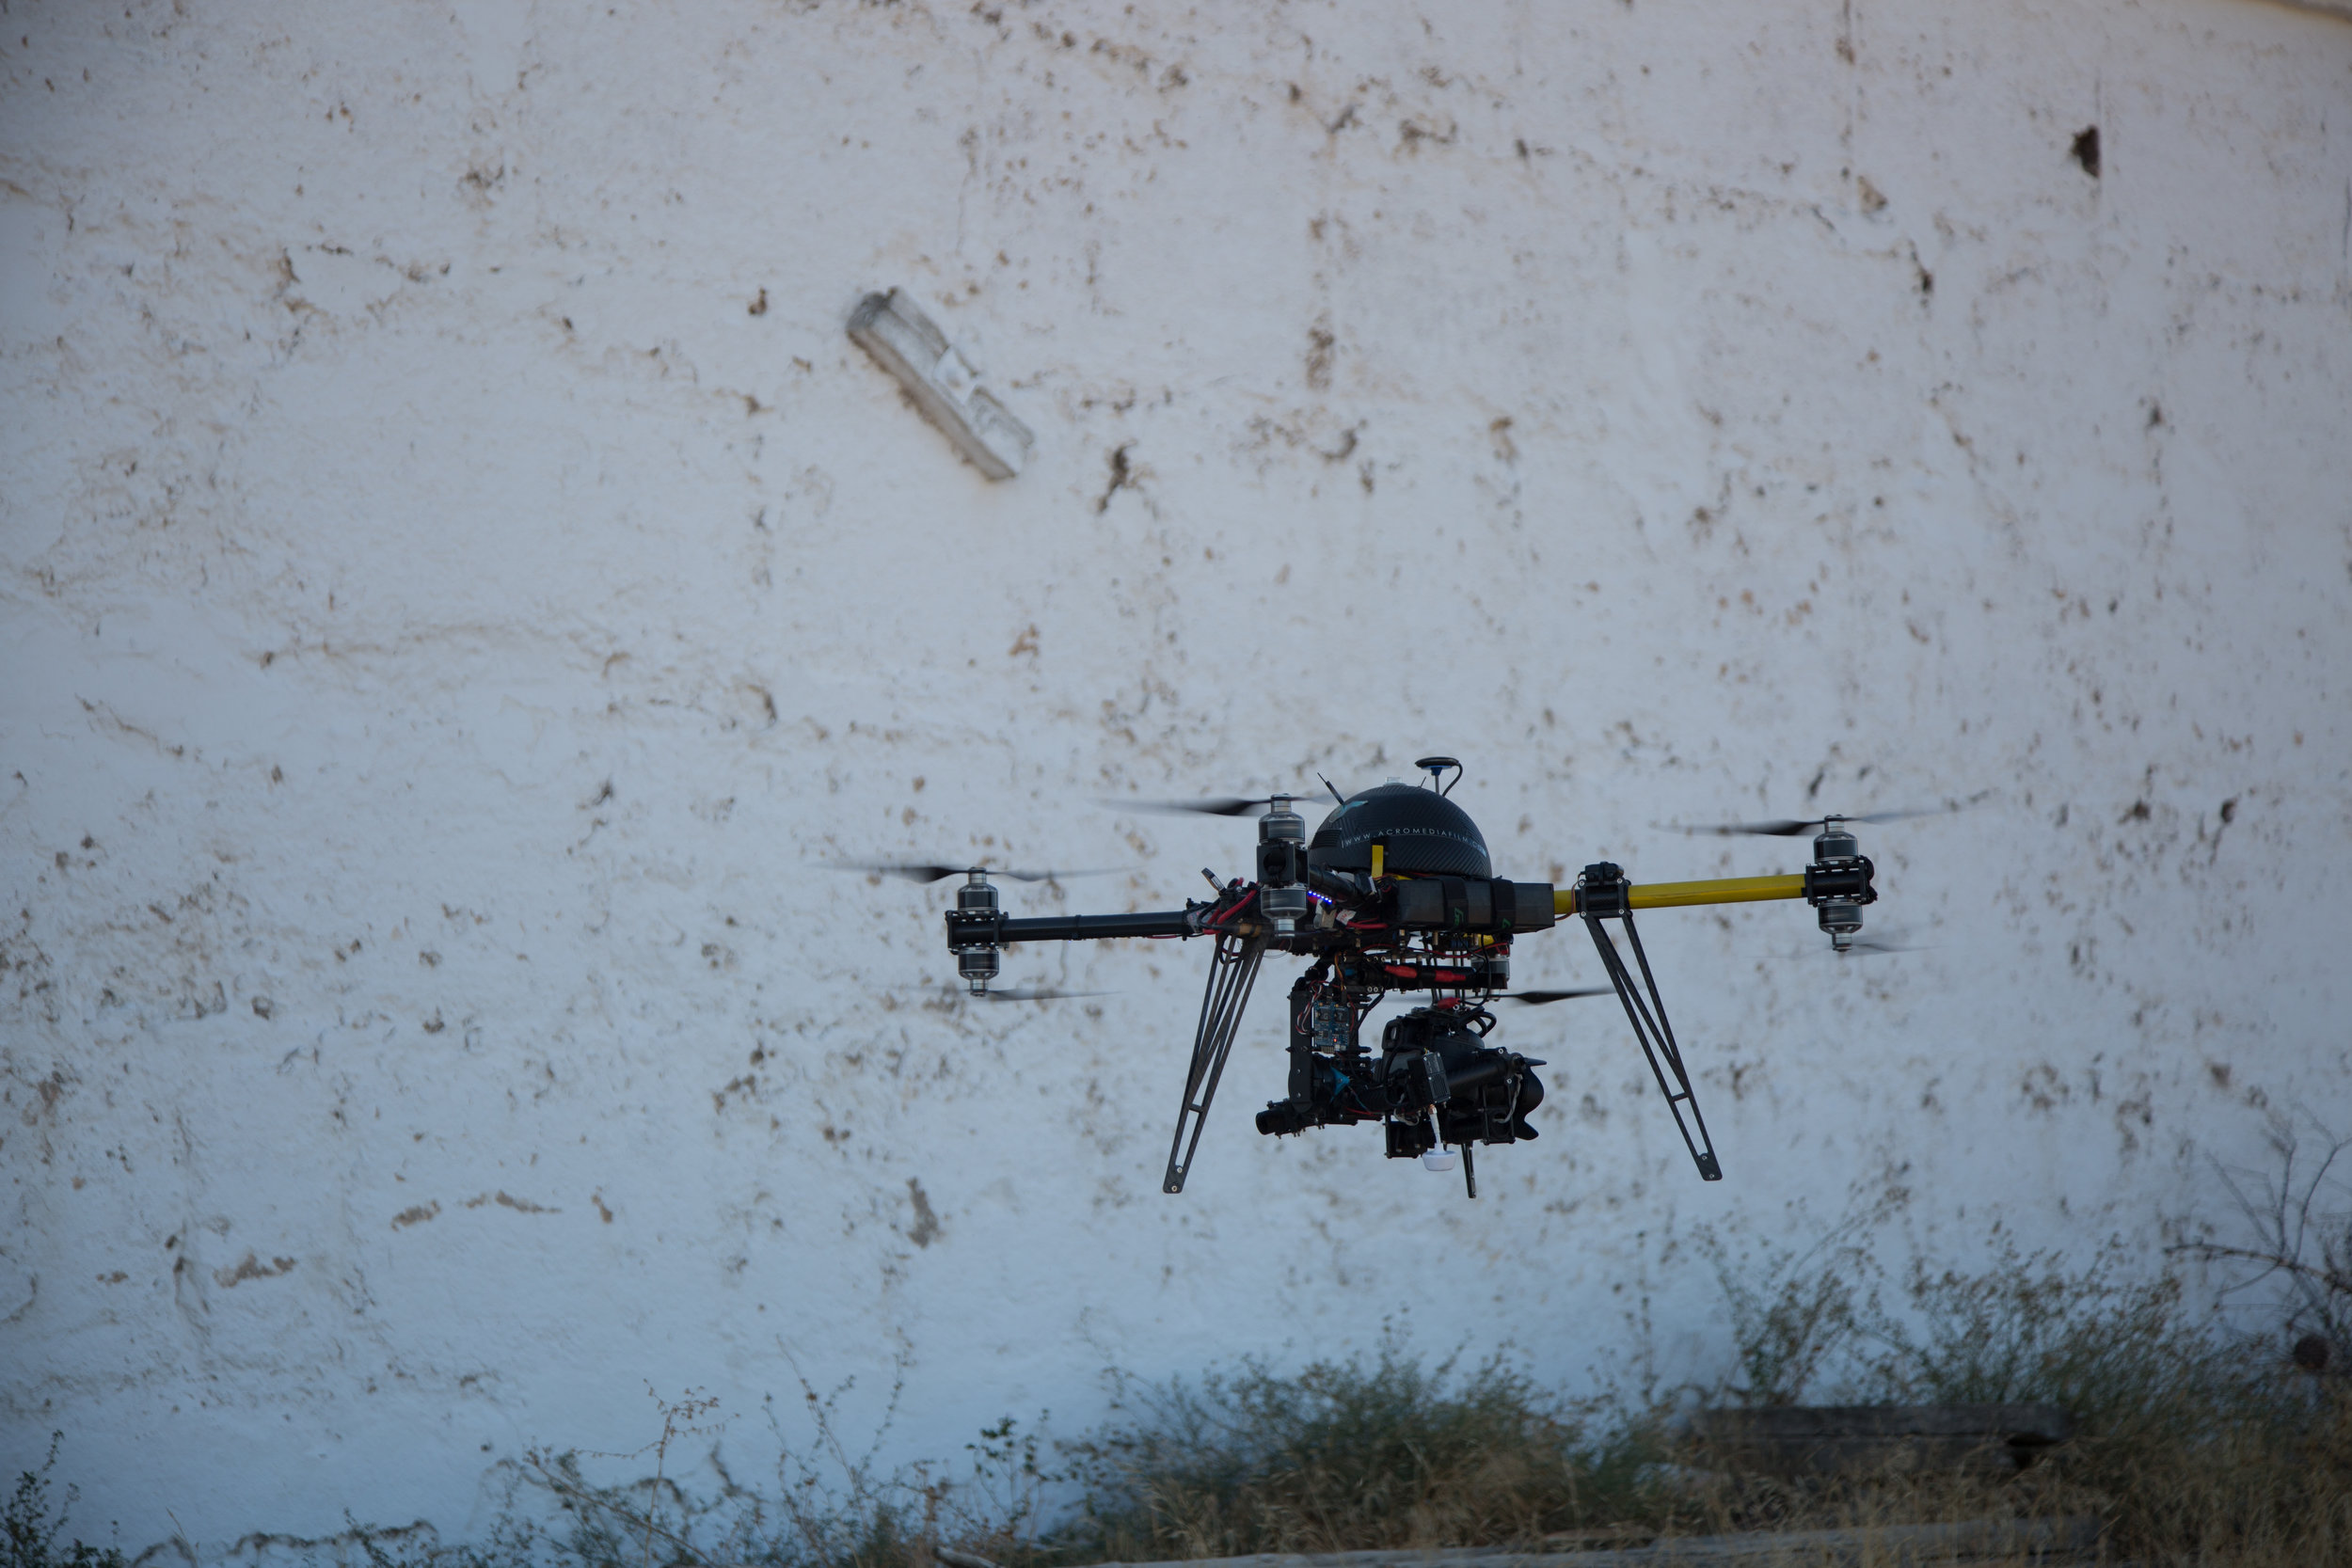 DRONES IN KRISIS: Professor from University of Bergen writes about them in the journal Krisis.(PHOTO:  Bold Content/Flickr)